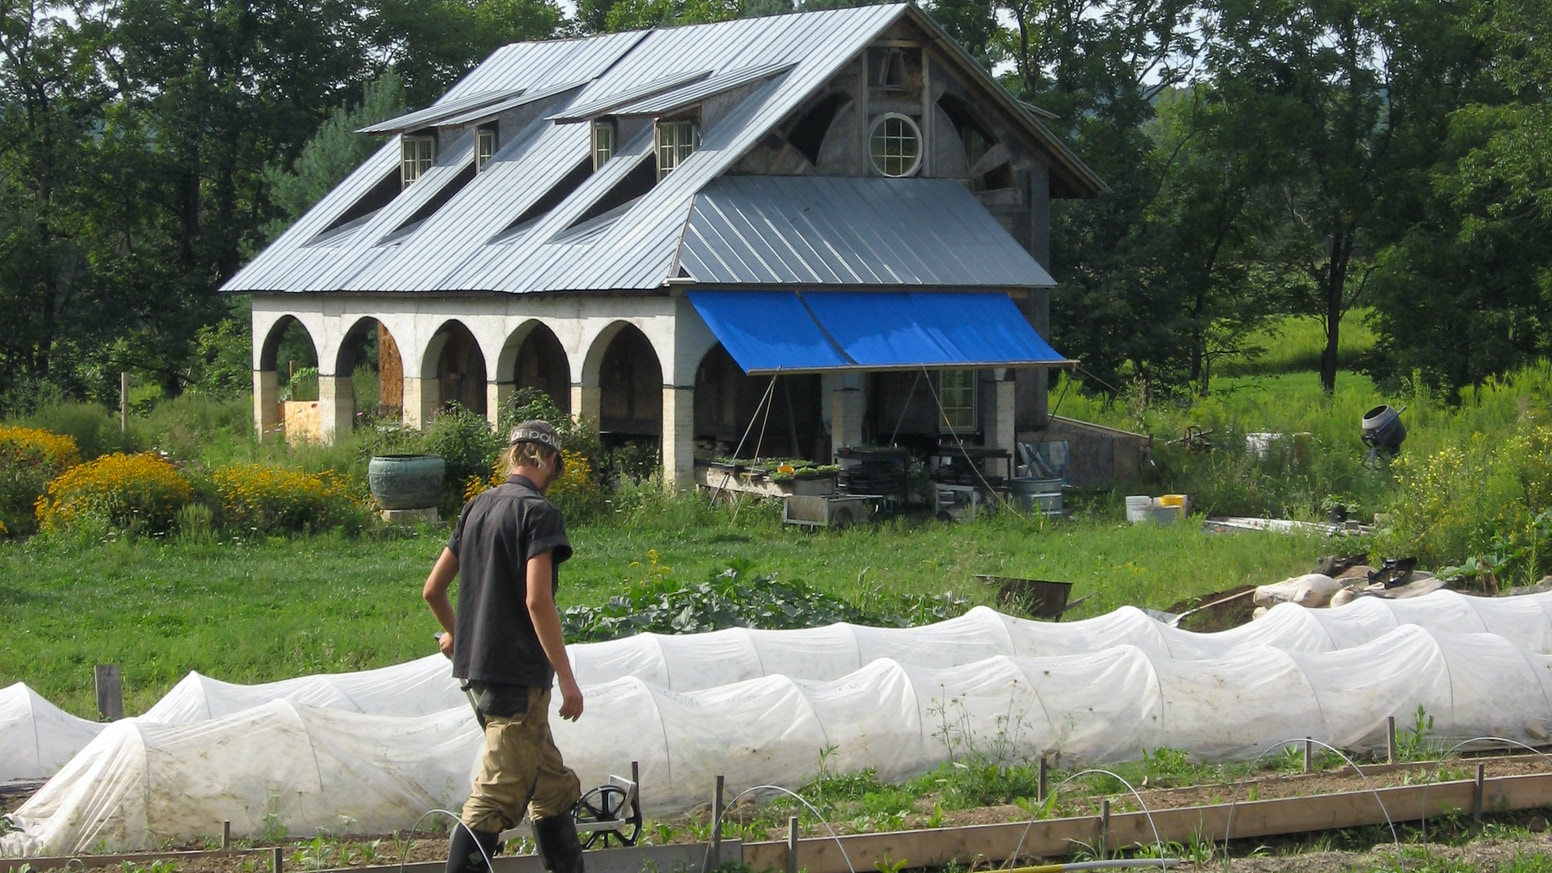 Construction Of Ten Hoop Houses On Howards End Csa Farm By Addison